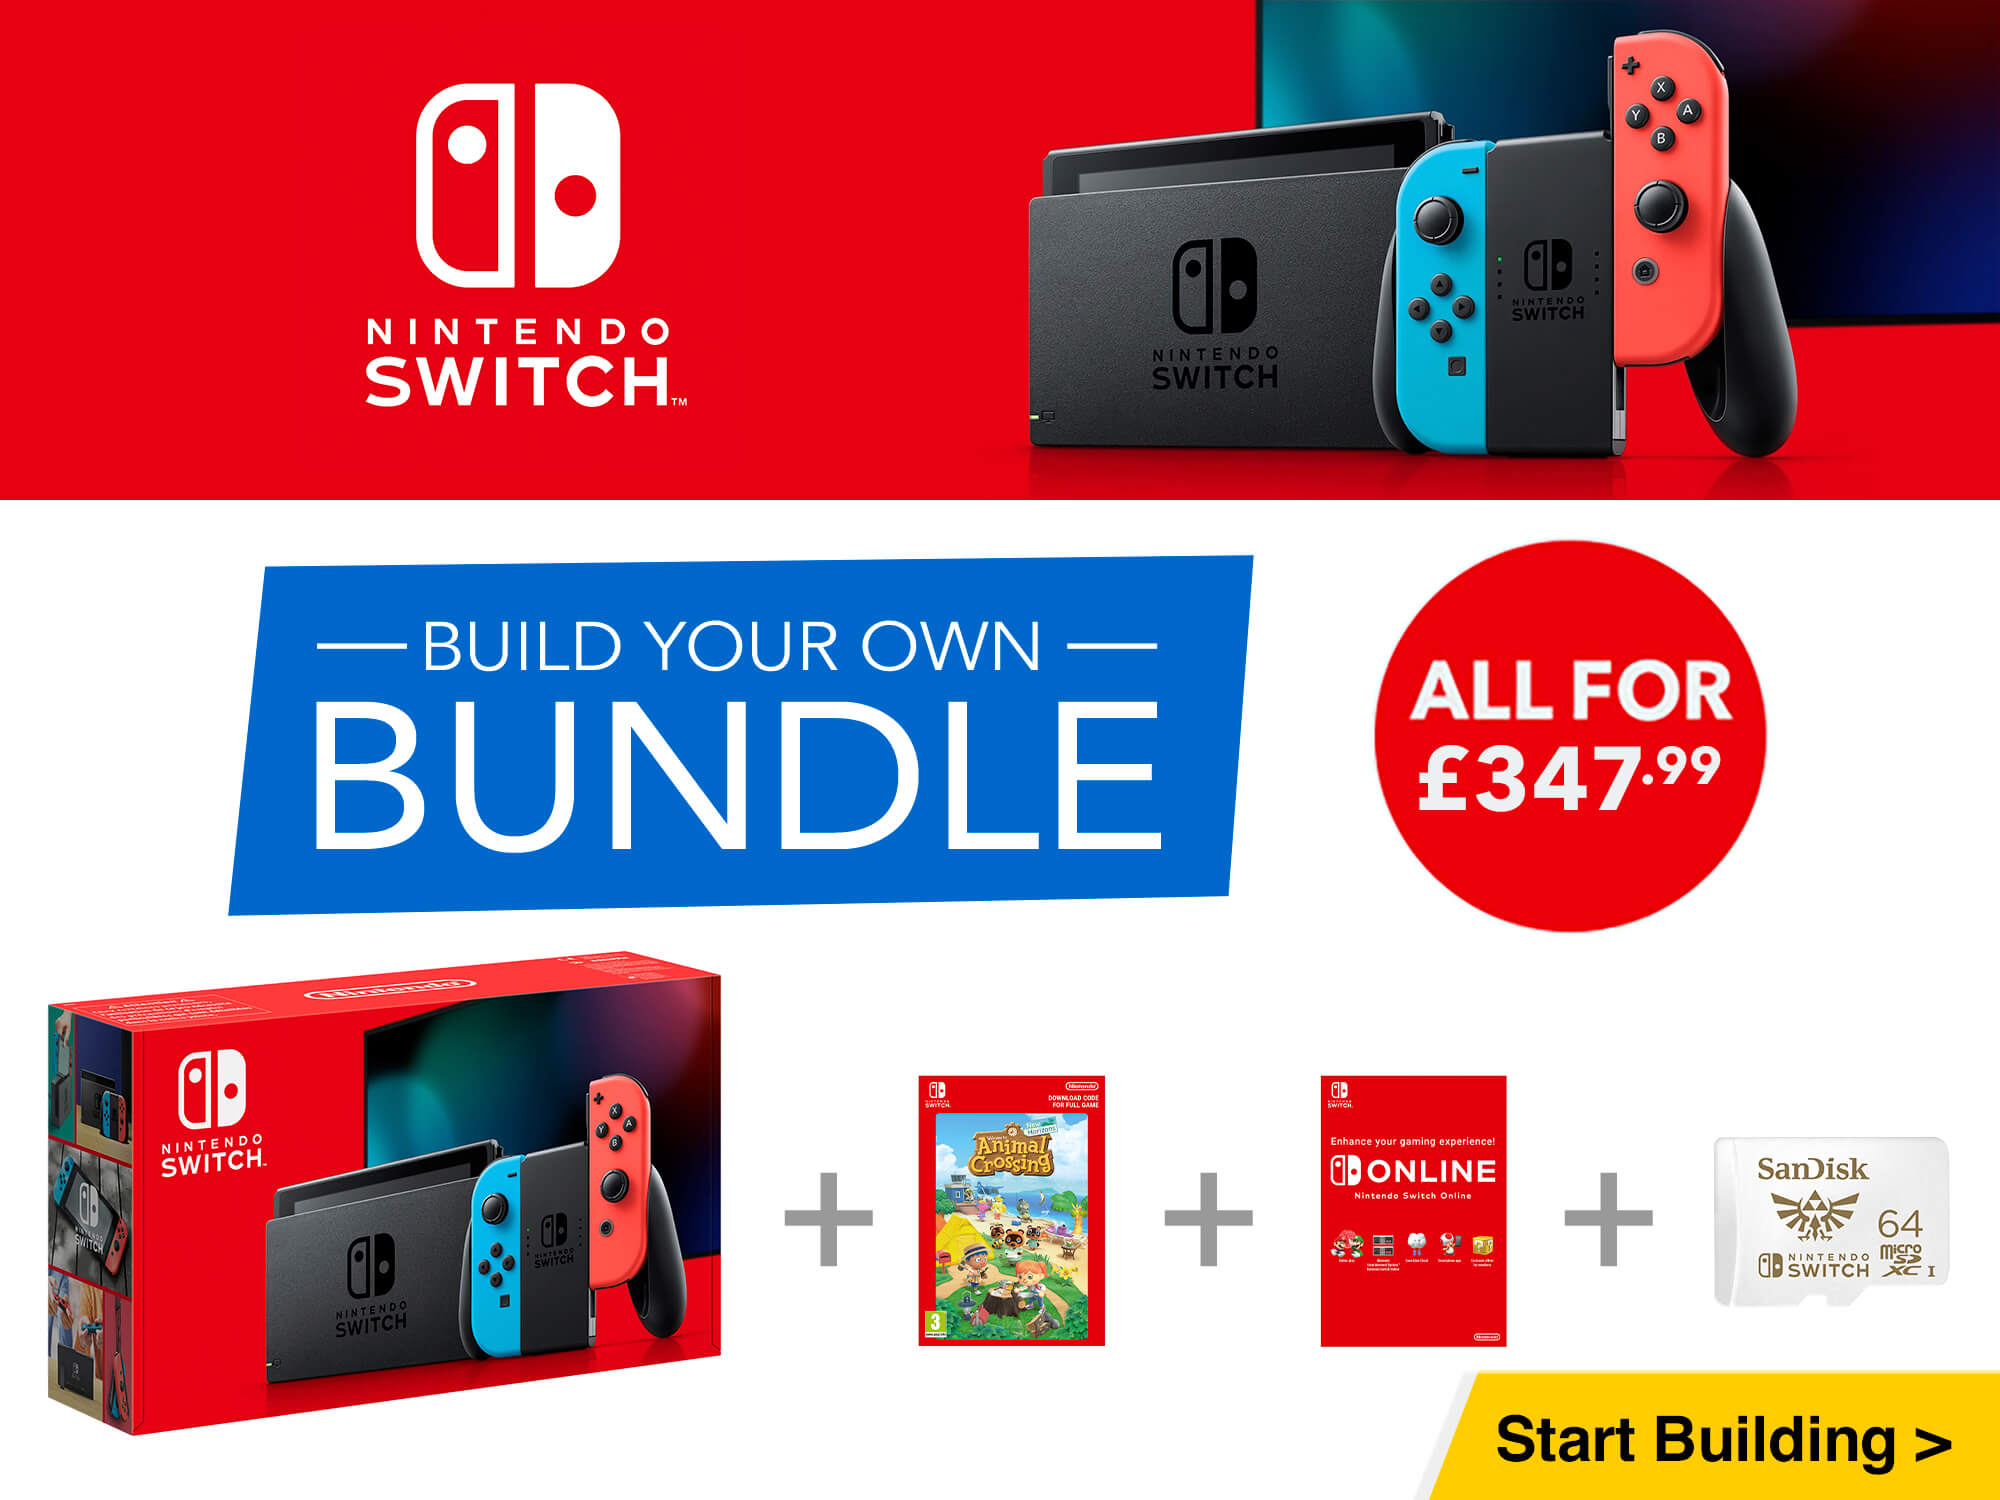 Nintendo Switch - Build Your Own Bundle